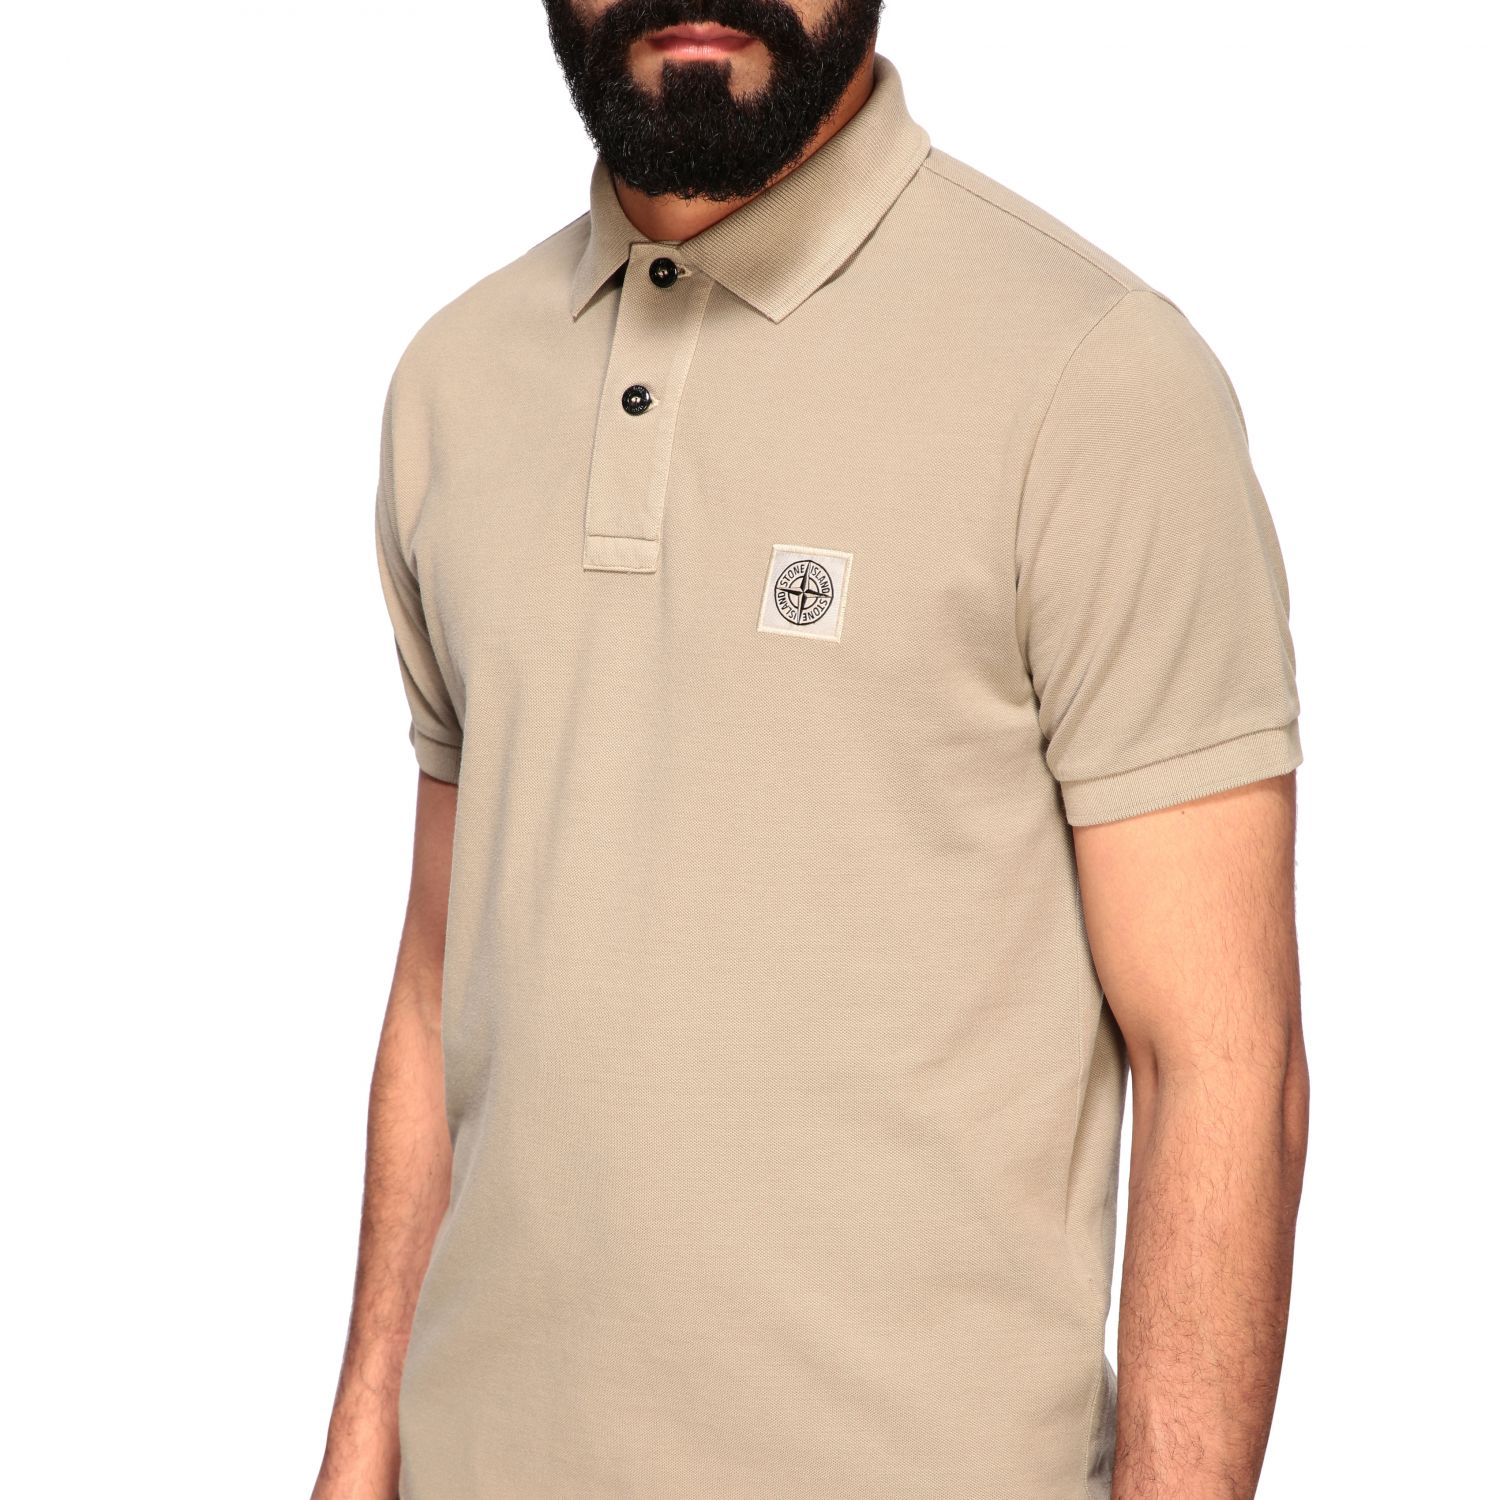 Stone Island short-sleeved polo shirt burnt 5